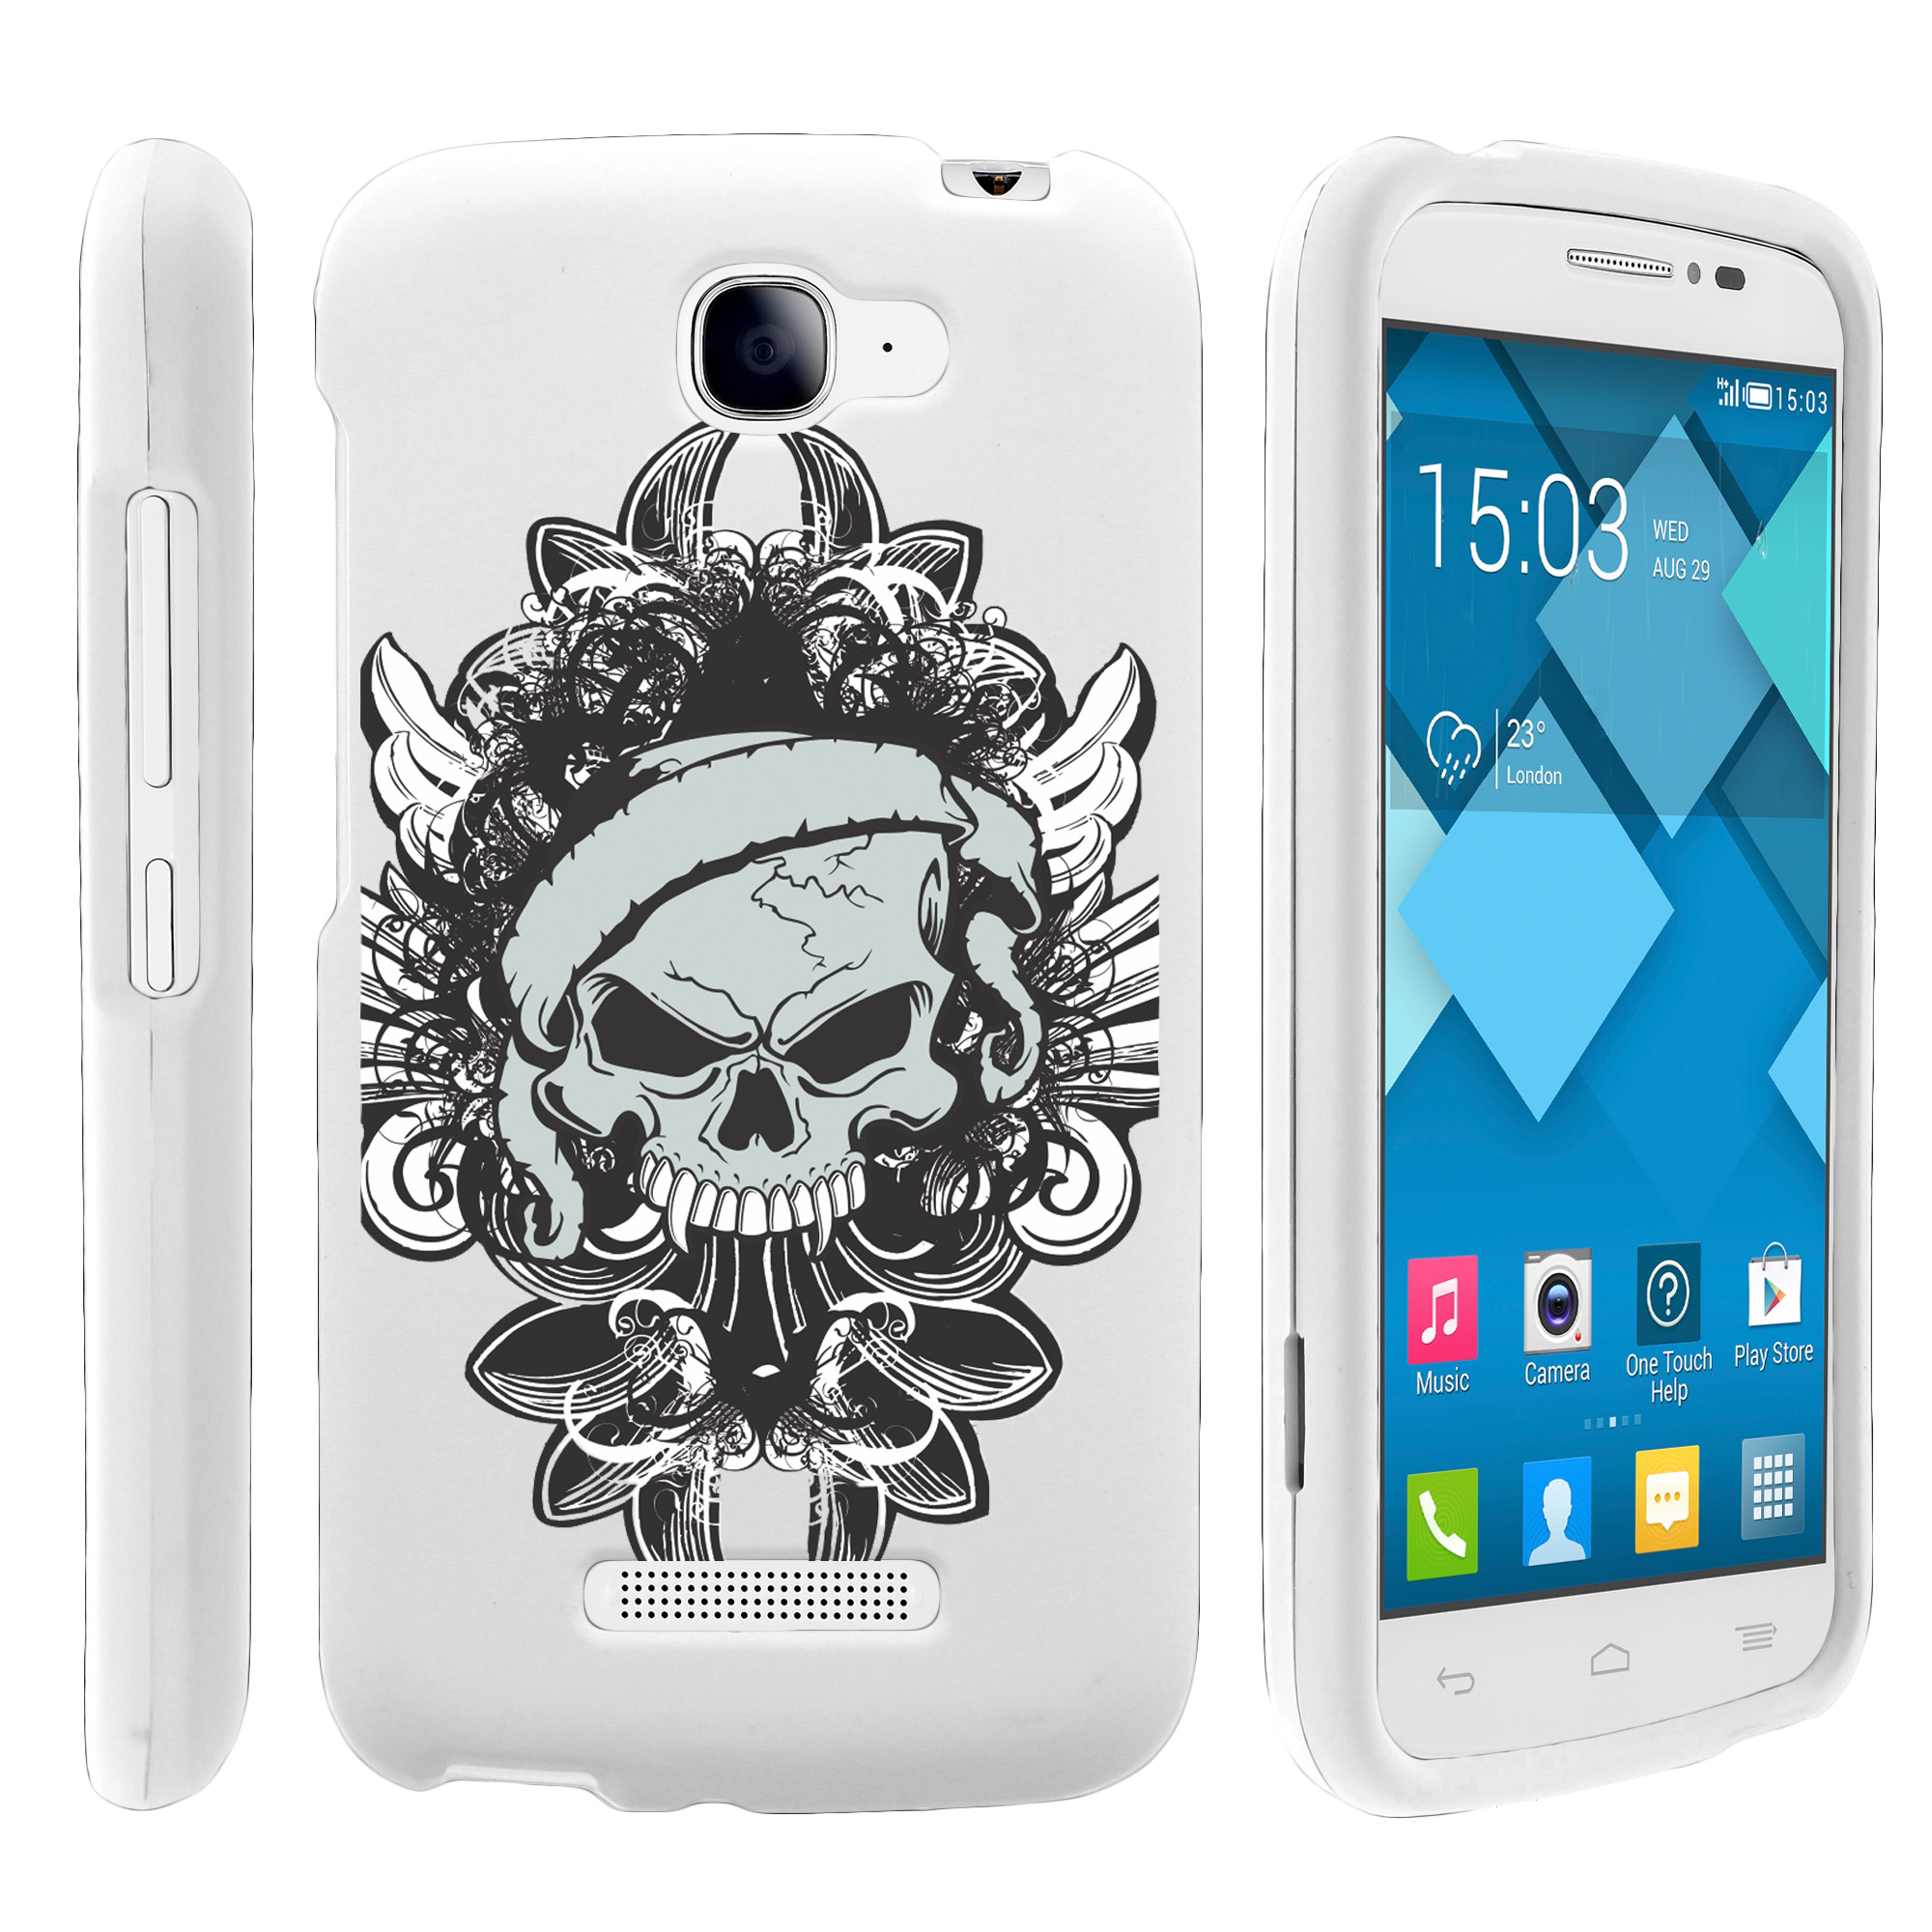 Alcatel Fierce 2, Pop Icon, 7040T, and A564C, [SNAP SHELL][White] 2 Piece Snap On Rubberized Hard White Plastic Cell Phone Case with Exclusive Art -  Demon Skull